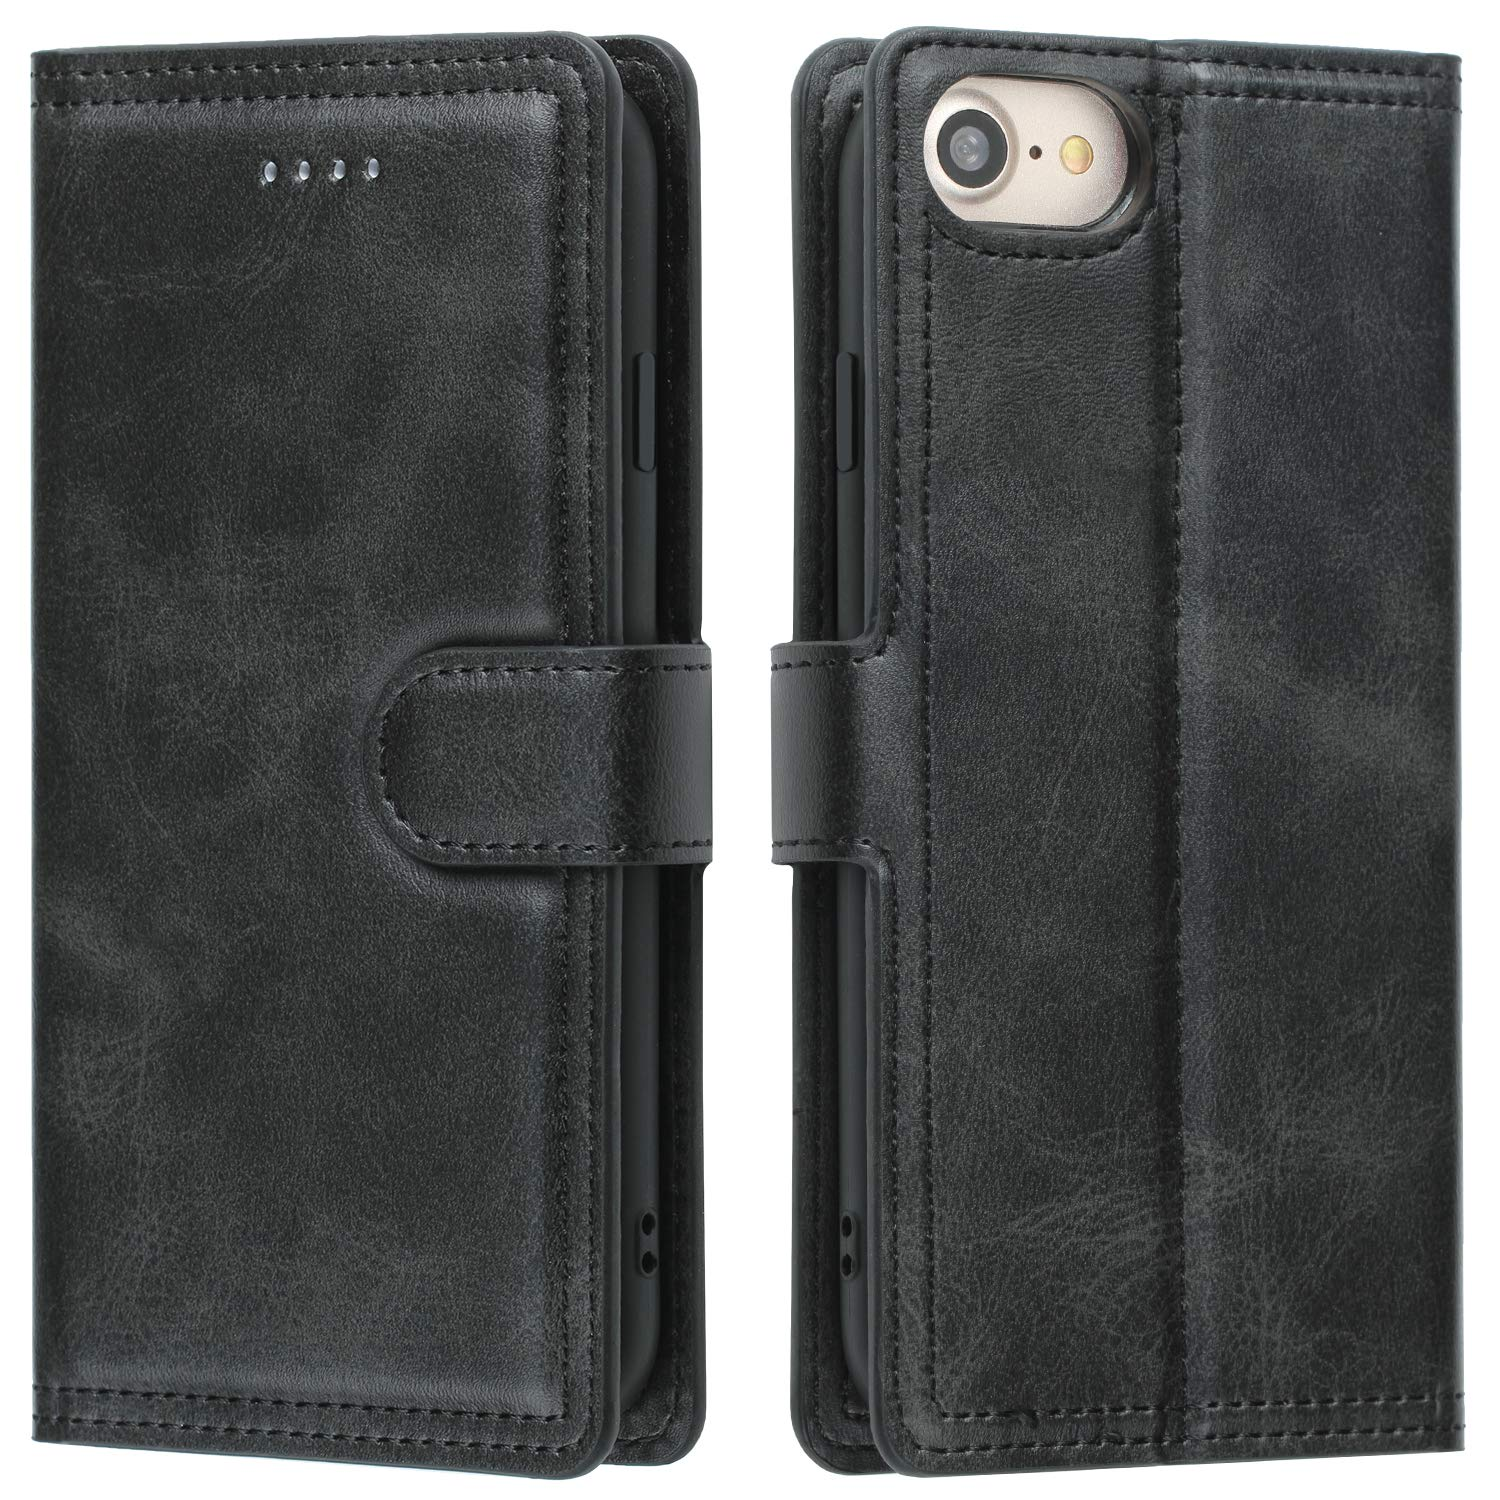 EYZUTAK Double Line Leather Case for iPhone 6 Plus iPhone 6S Plus iPhone 7 Plus iPhone 8 Plus, Solid Color Full Coverage Premium Flip Leather Case with Magnetic Closure Kickstand Card Slots - Black